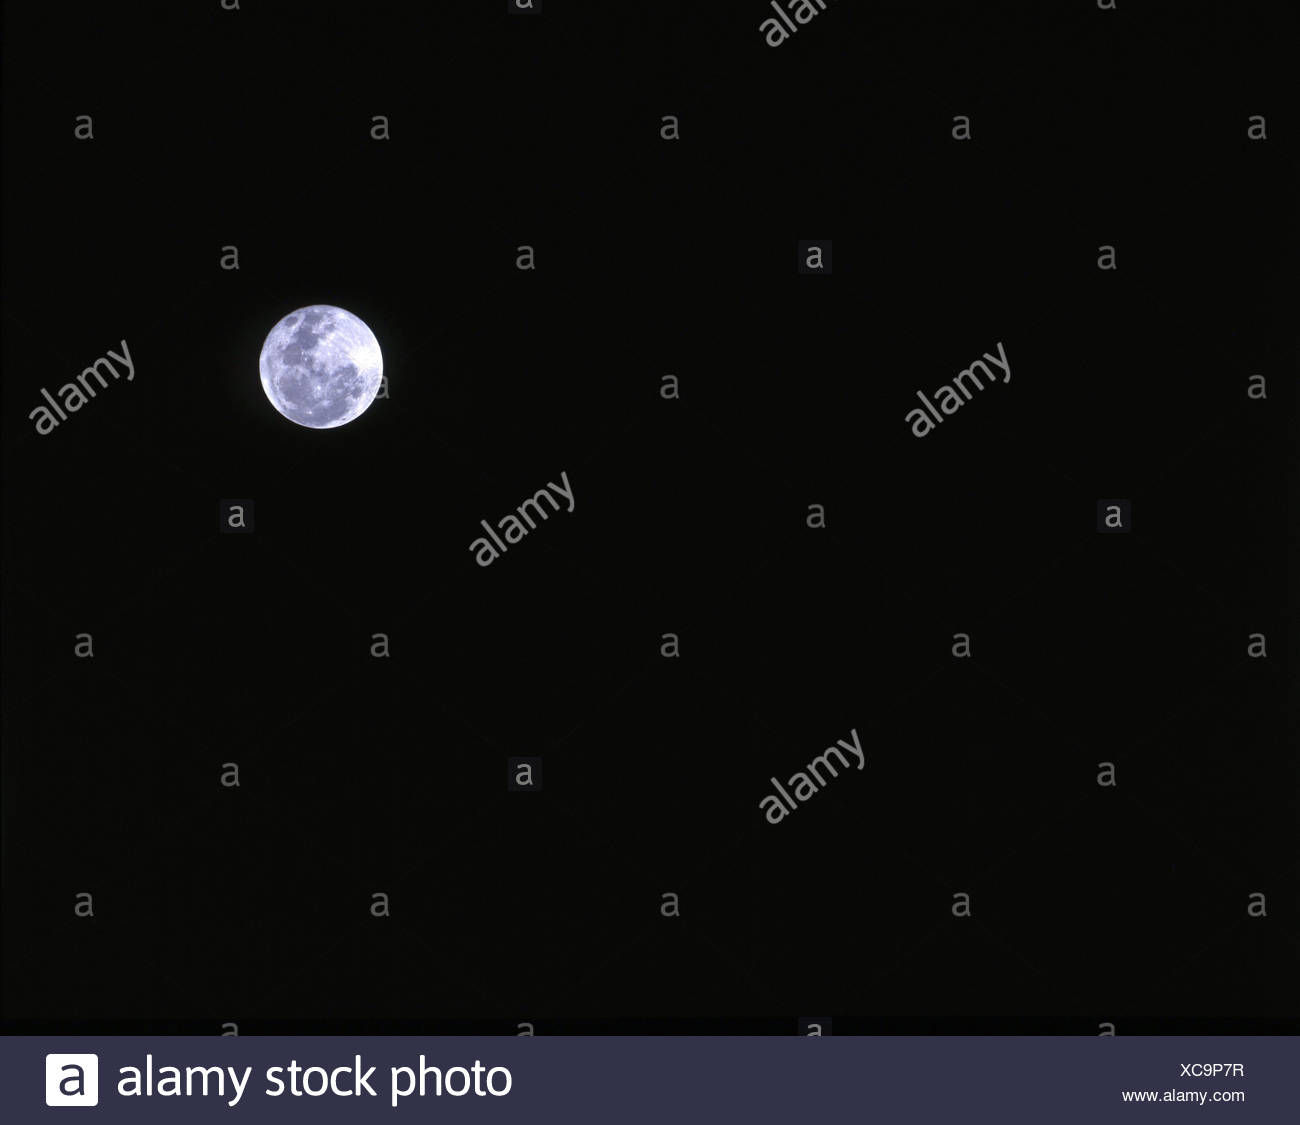 moon full moon darkness at night night night sky sky darkly - Stock Image